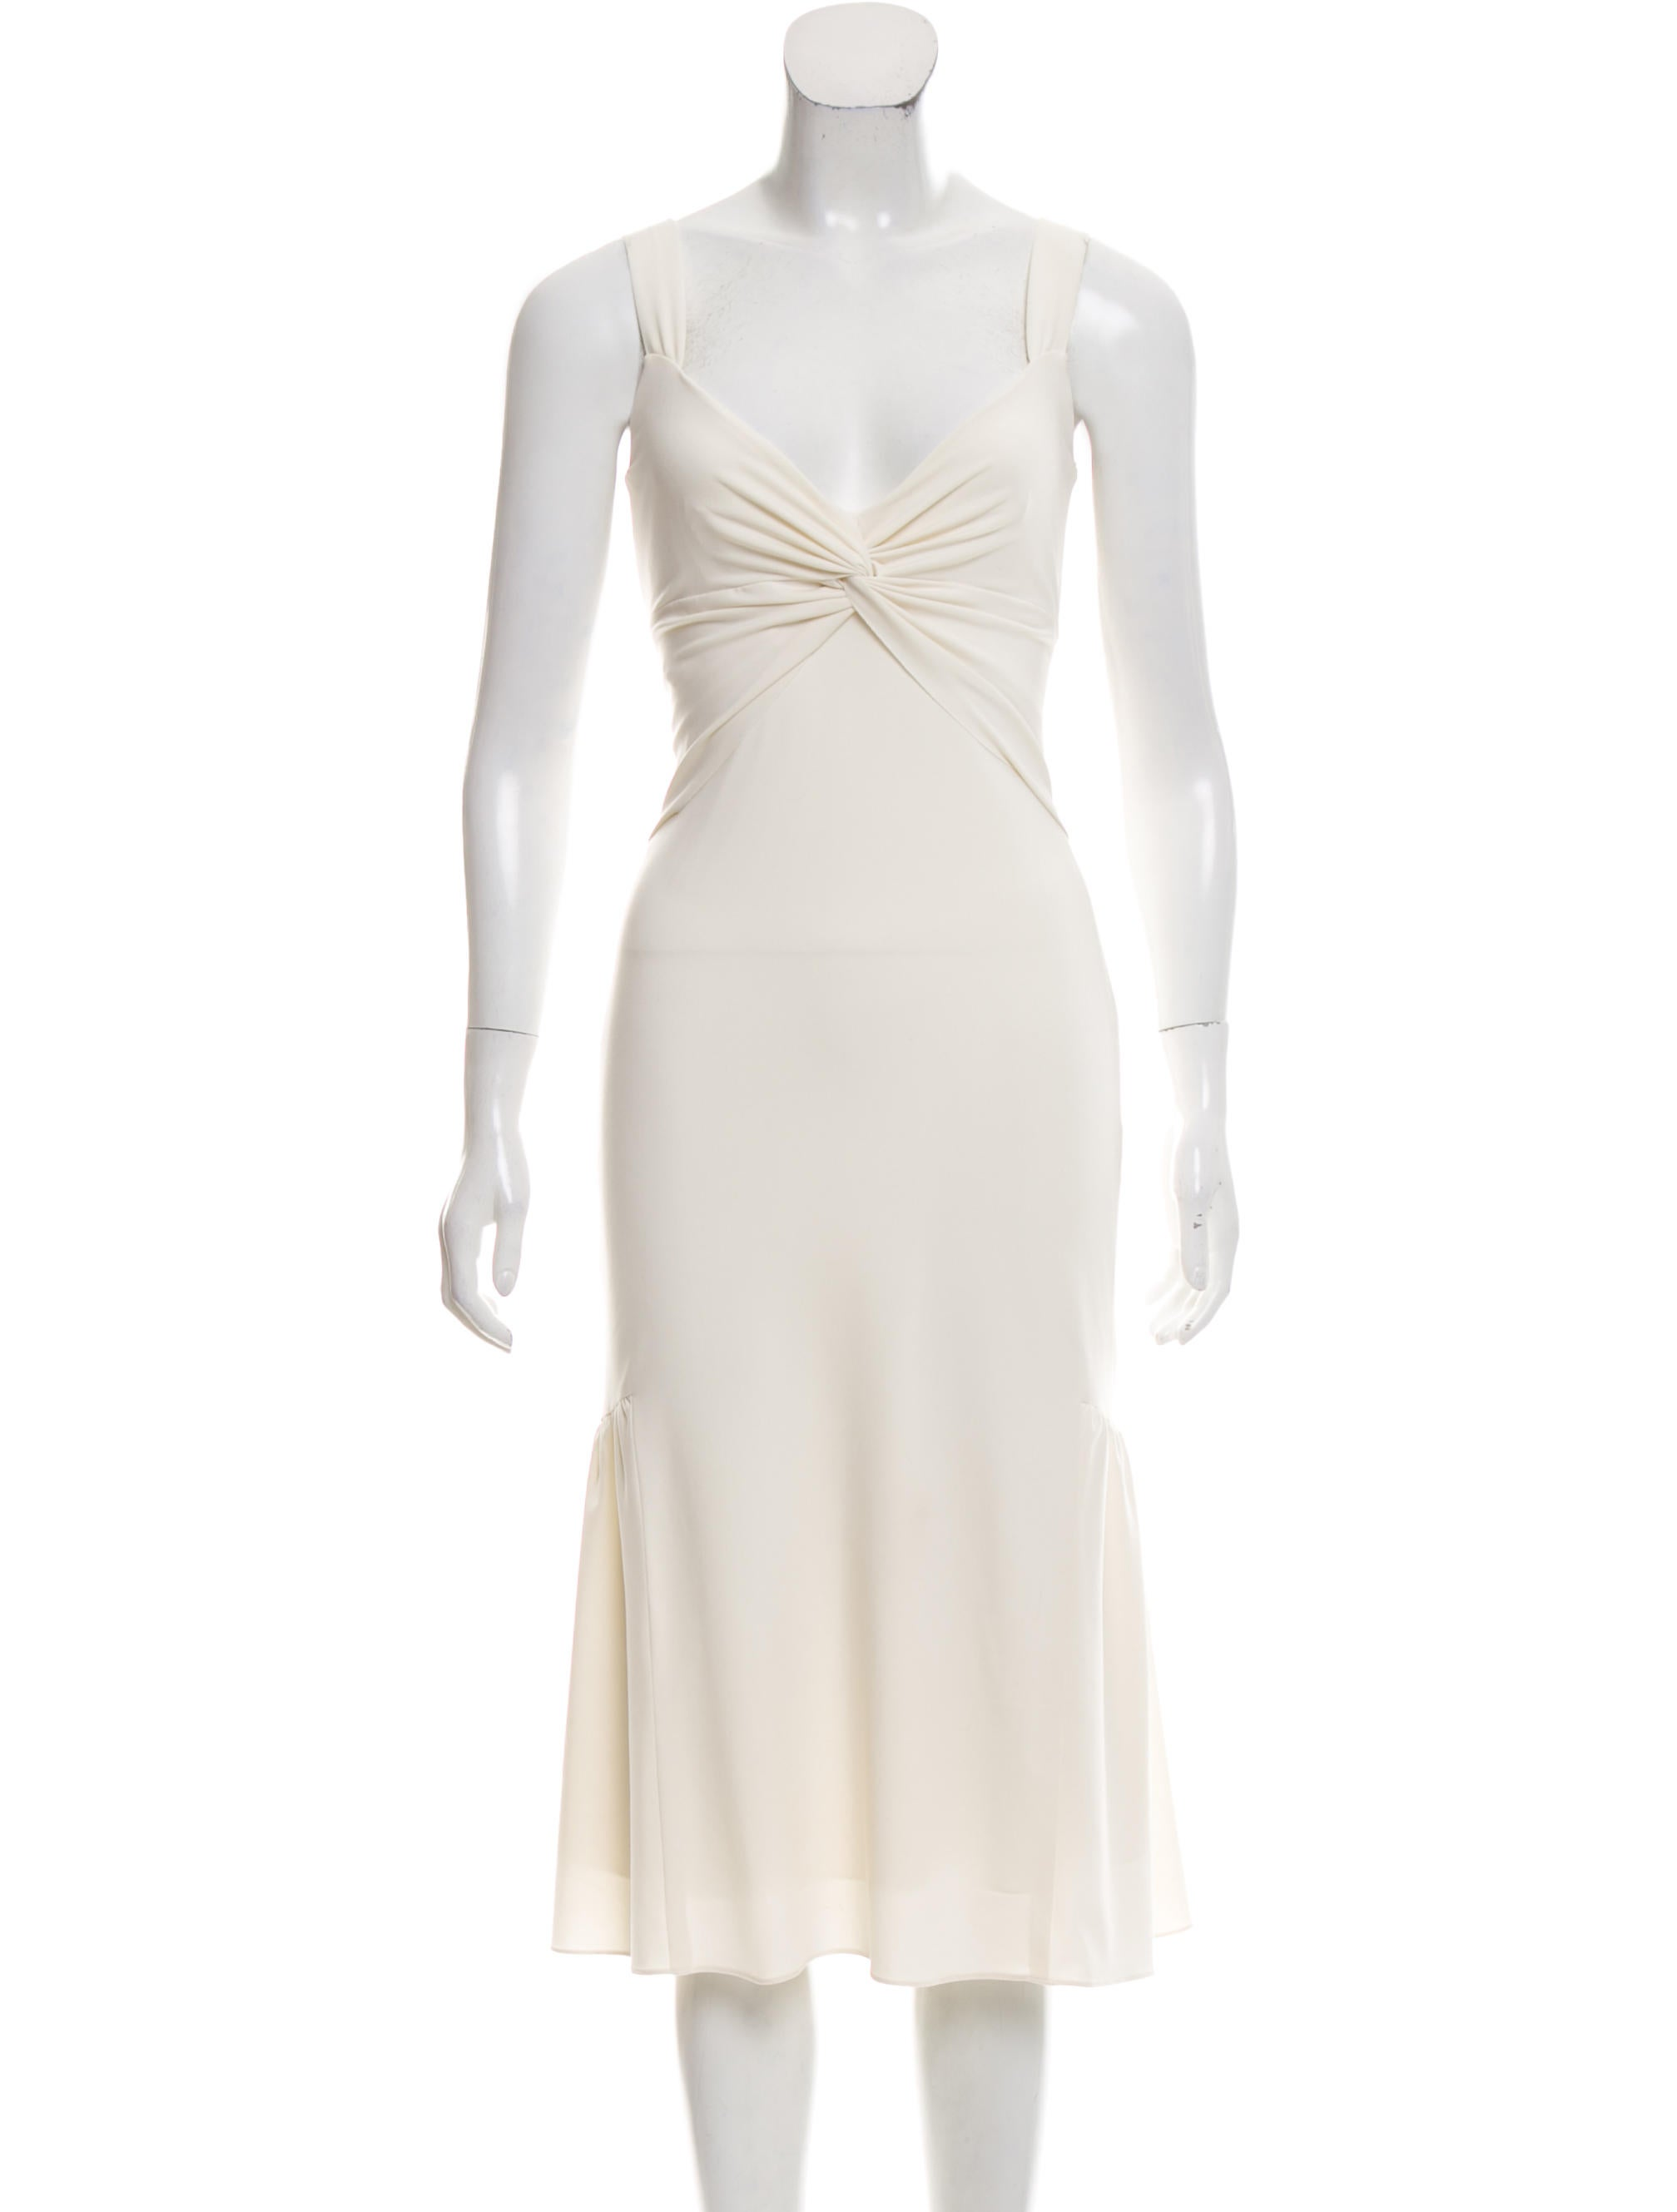 Vera Wang Tie-Waist Cocktail Dress - Clothing - VER27349 | The RealReal